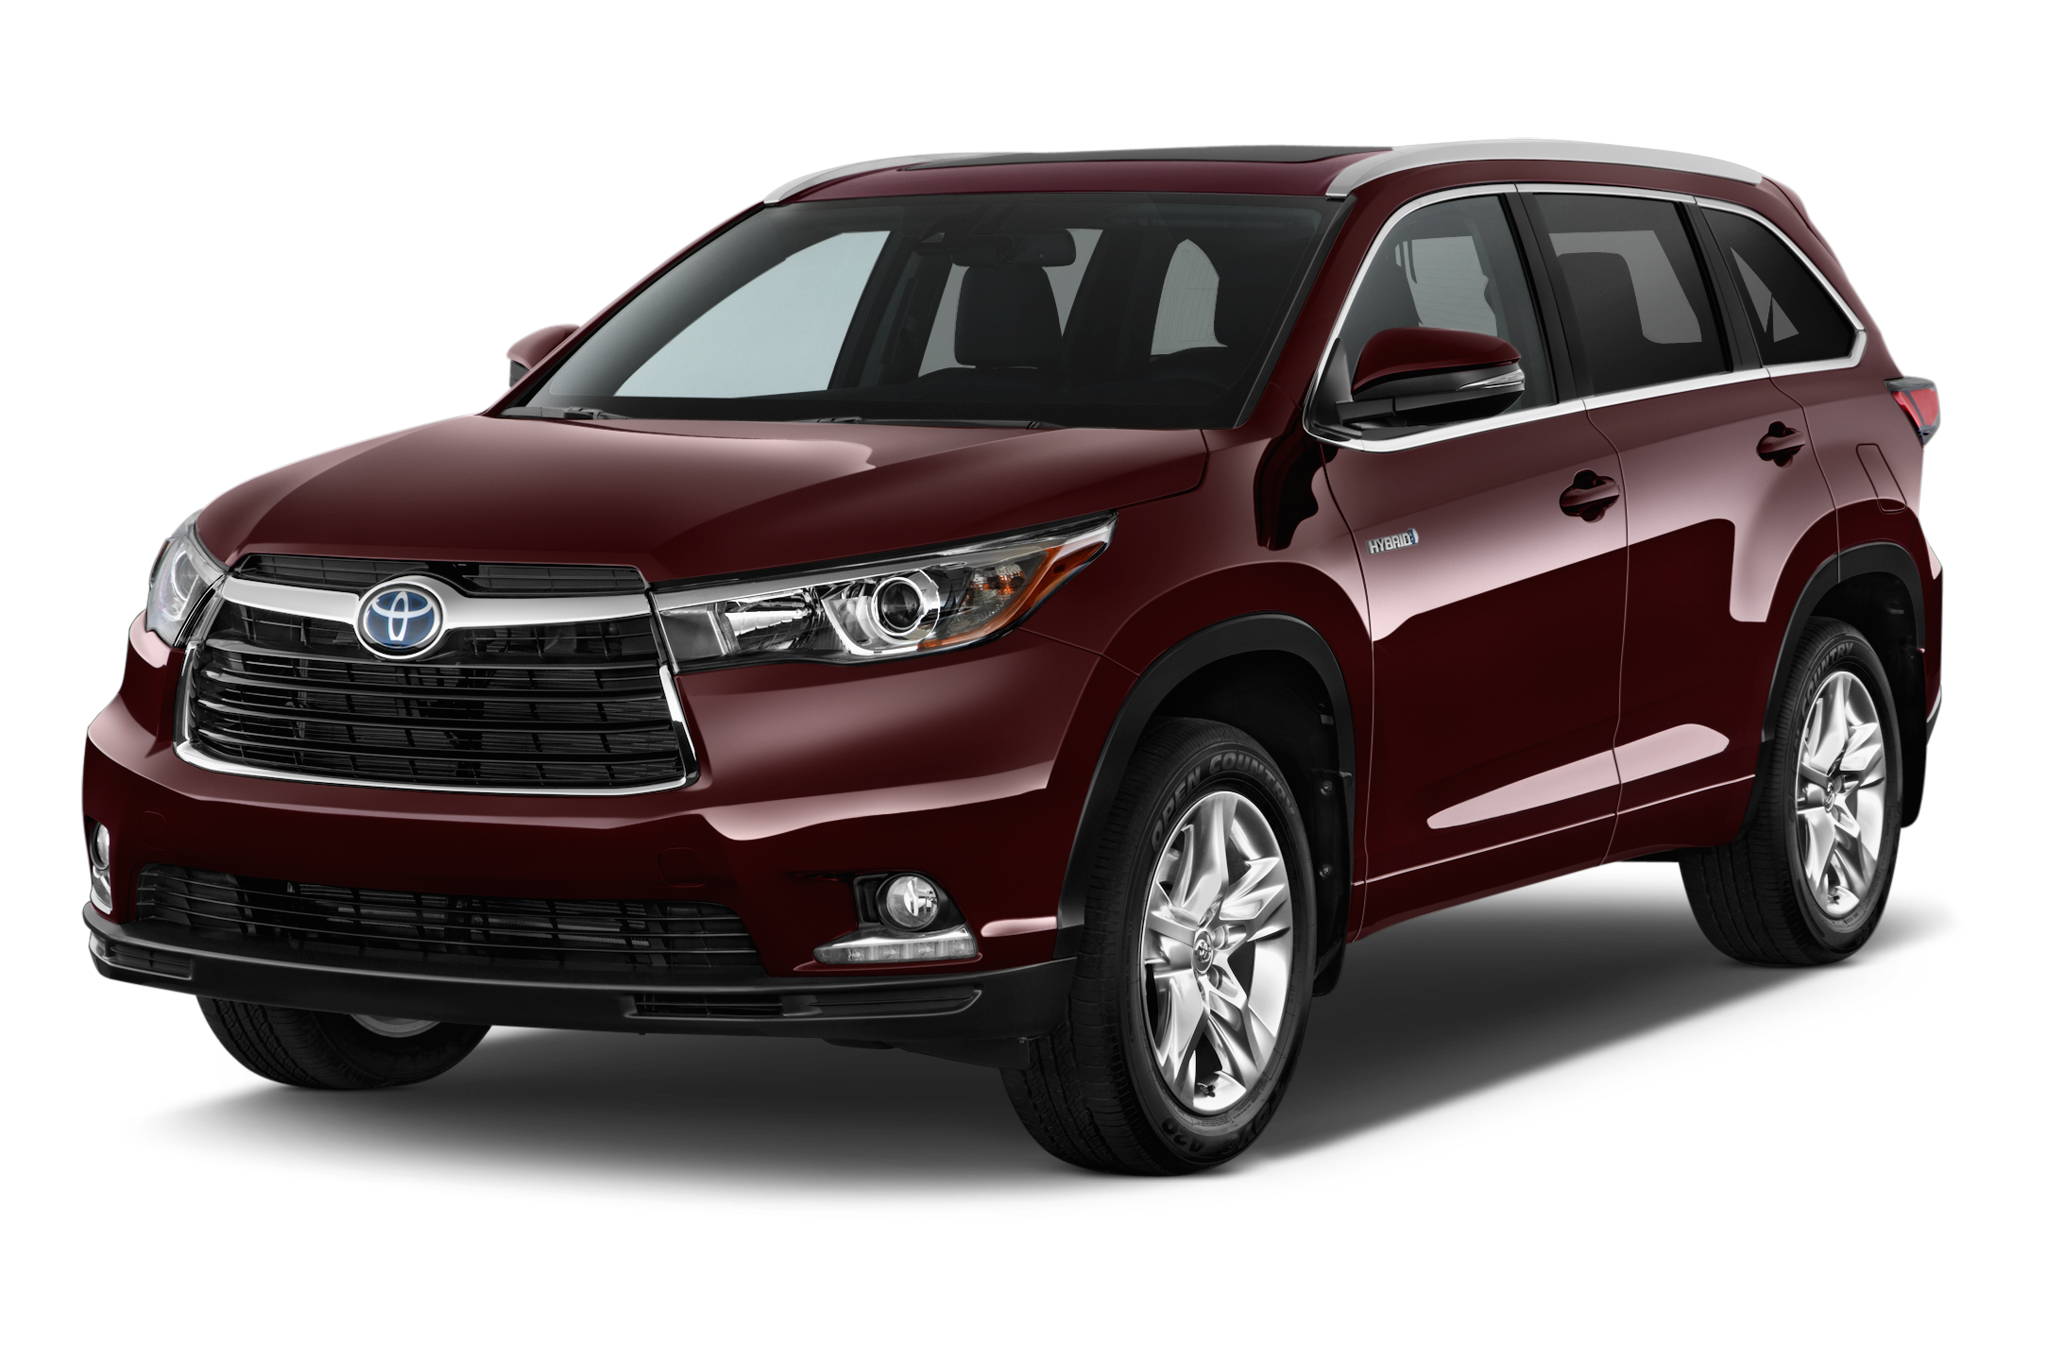 2016 toyota highlander limited platinum hybrid 4x4 reviews. Black Bedroom Furniture Sets. Home Design Ideas